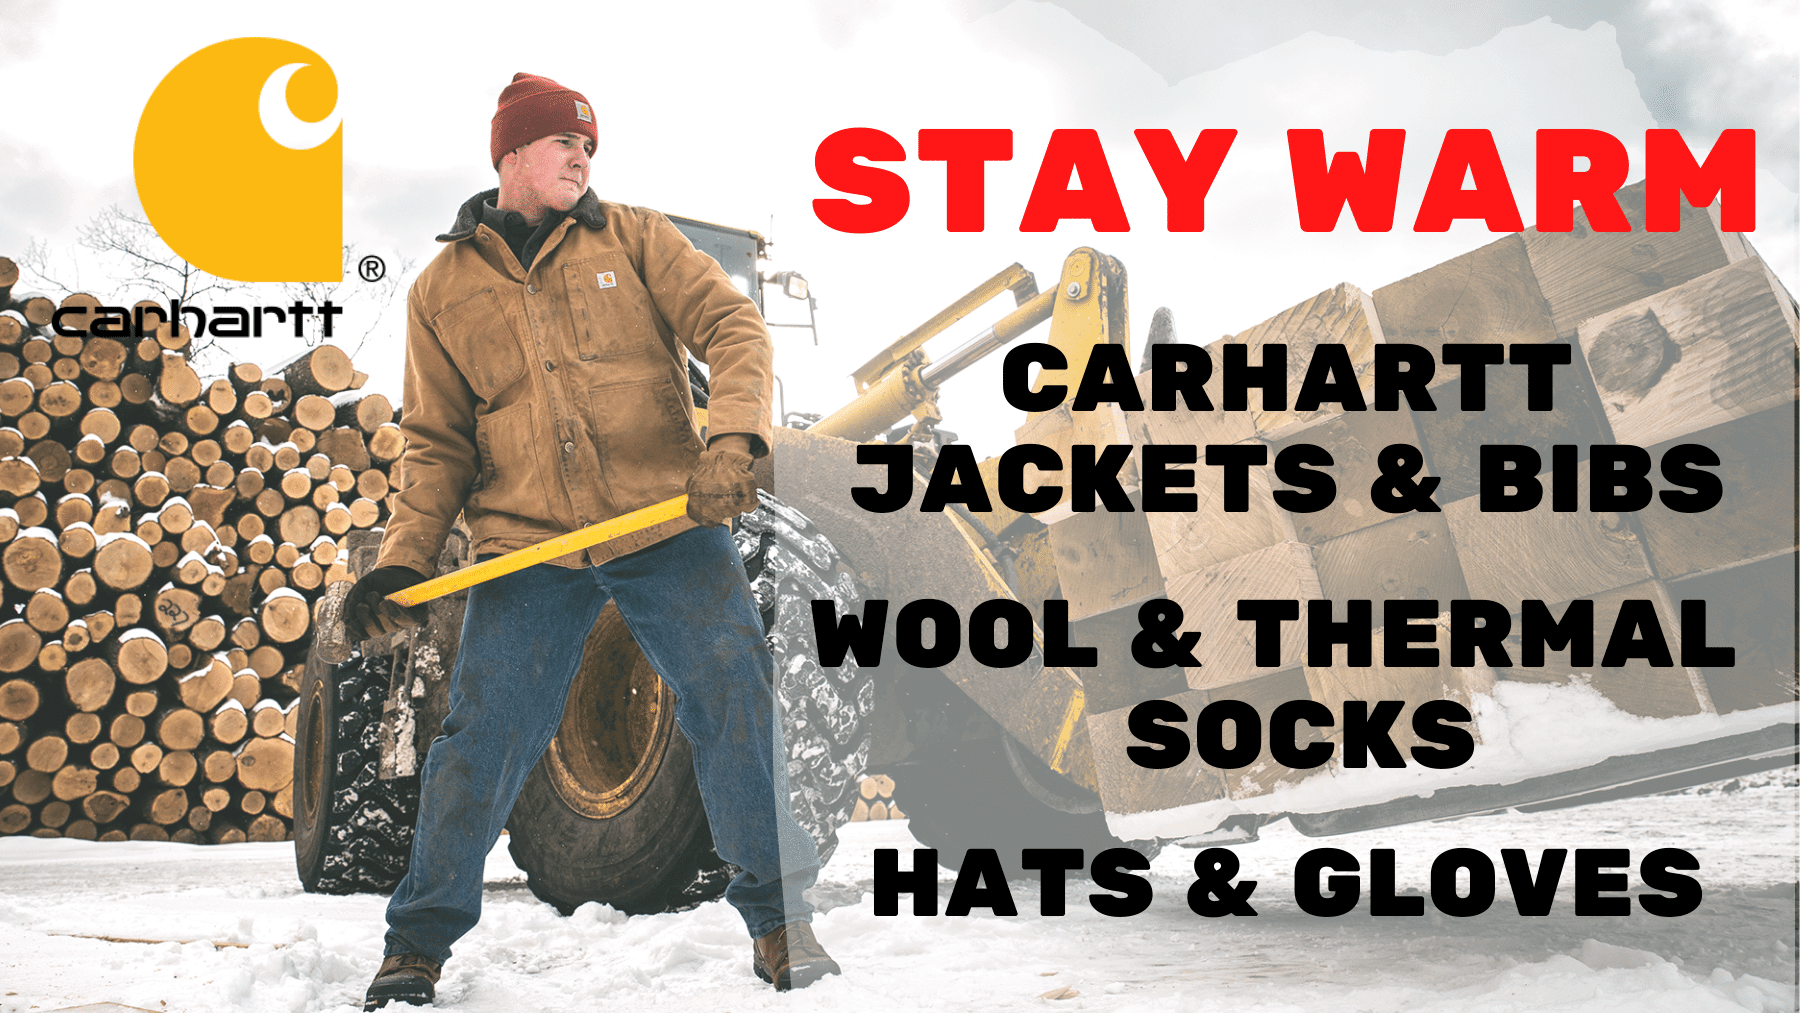 Stay warm with Carhartt Jackets and bibs, wool and thermal socks and hats and gloves